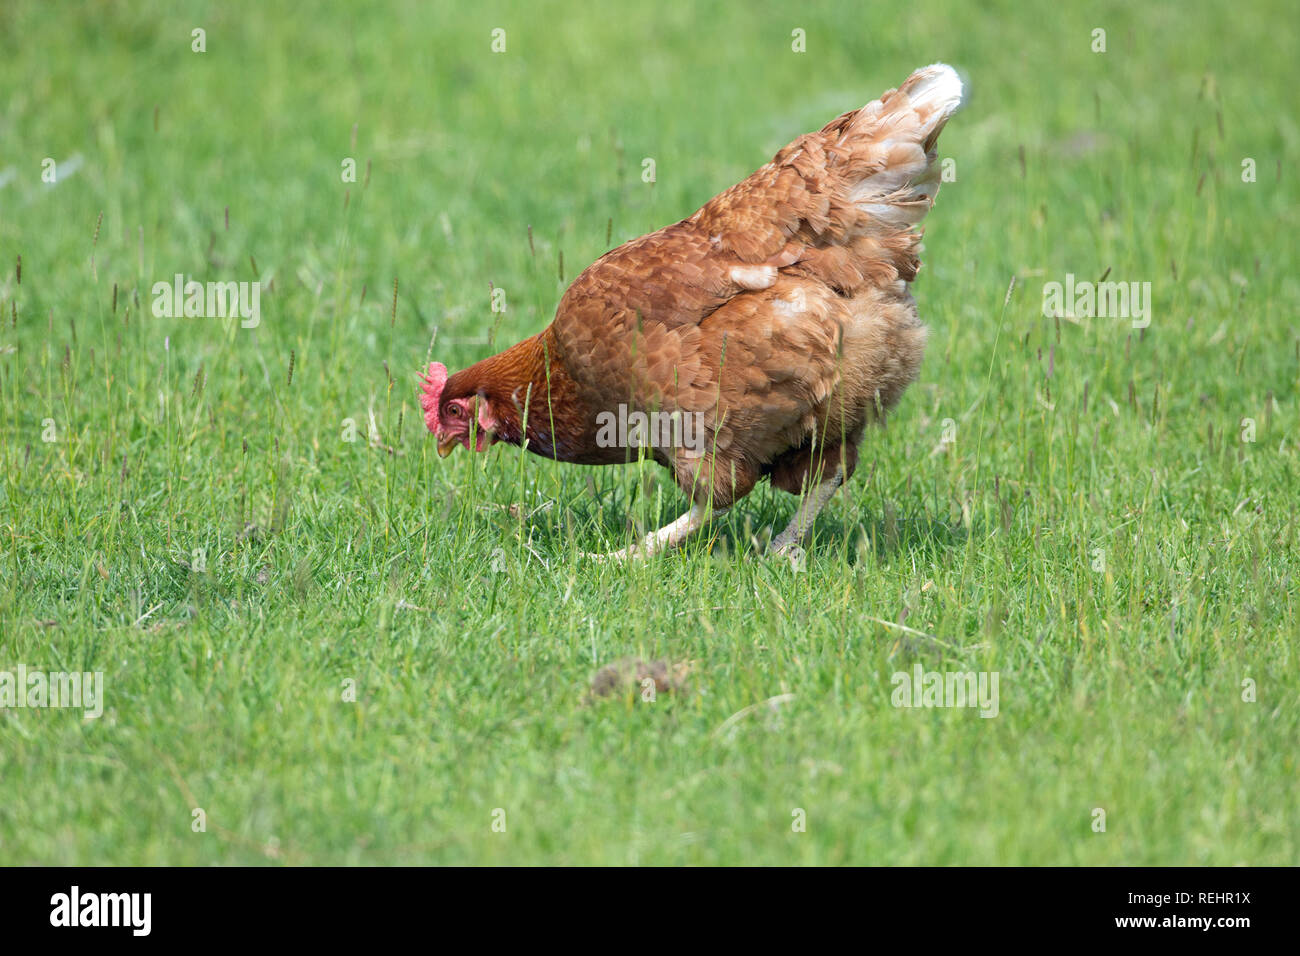 Domestic Fowl (Gallus gallus), an egg laying hybrid. Here living a free-ranging life, foraging amongst green grassland pasture.  - Stock Image